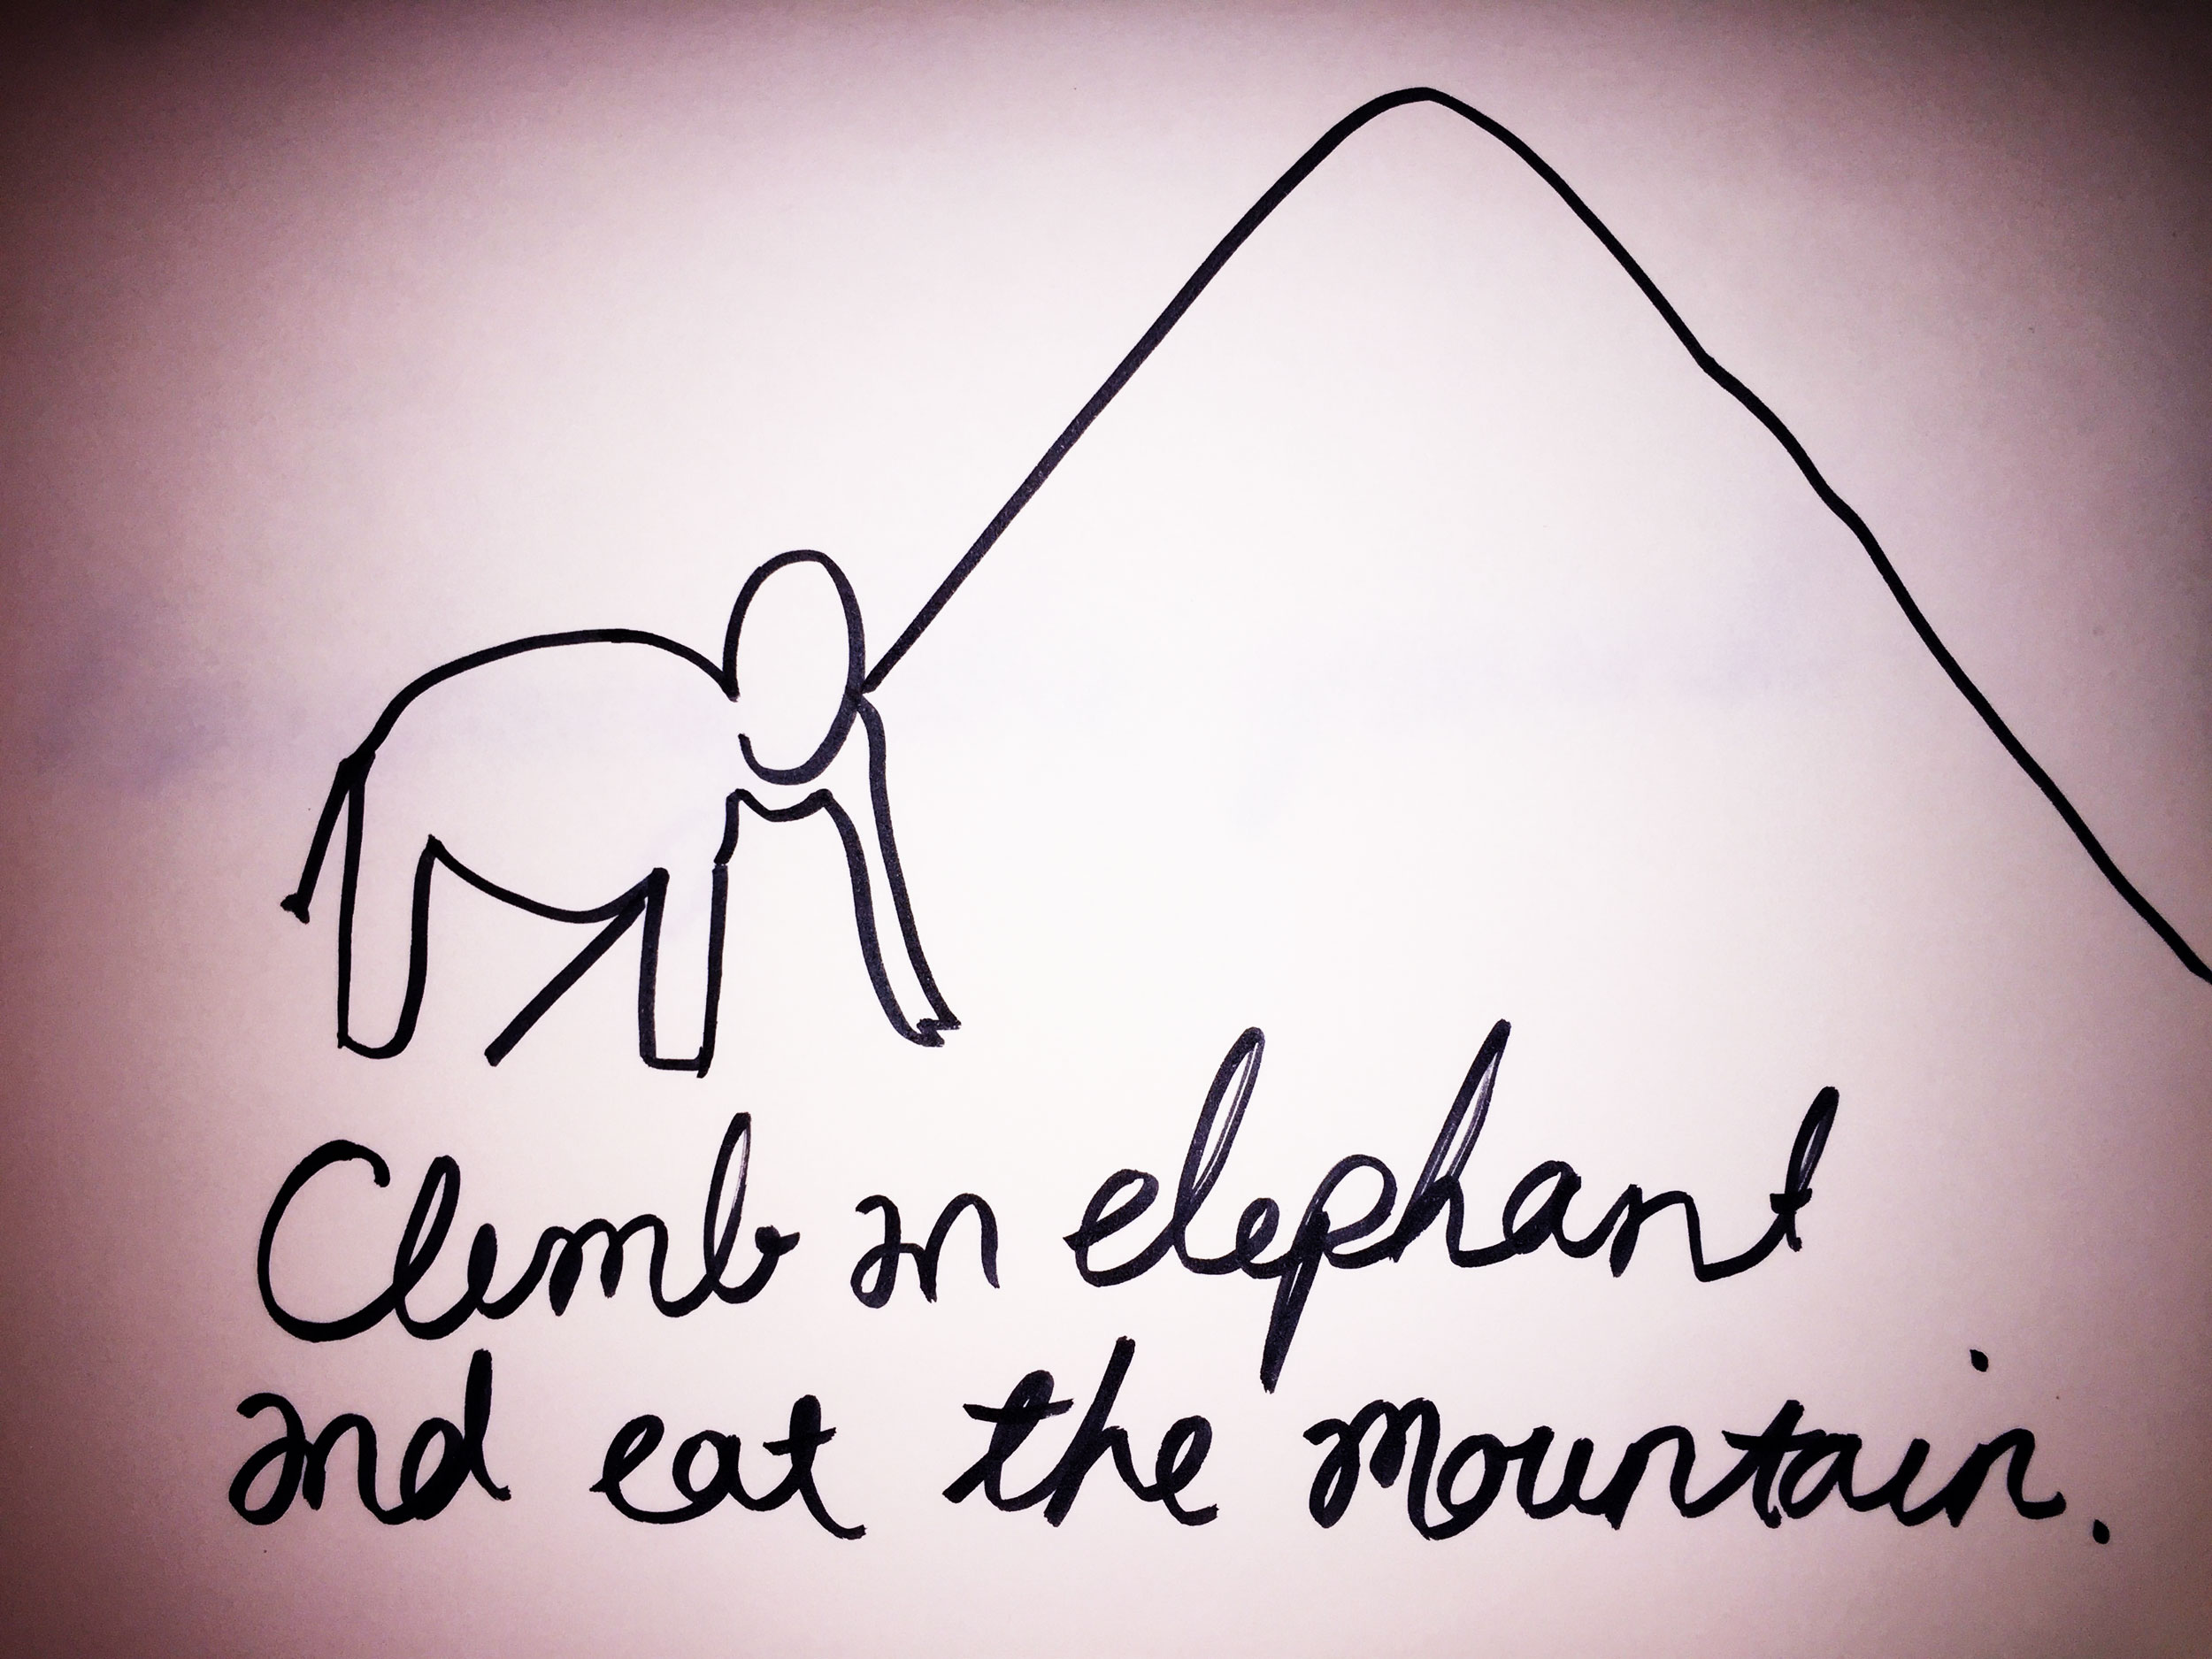 Climb an elephant and eat the mountain. Drawing Luke Hockley.